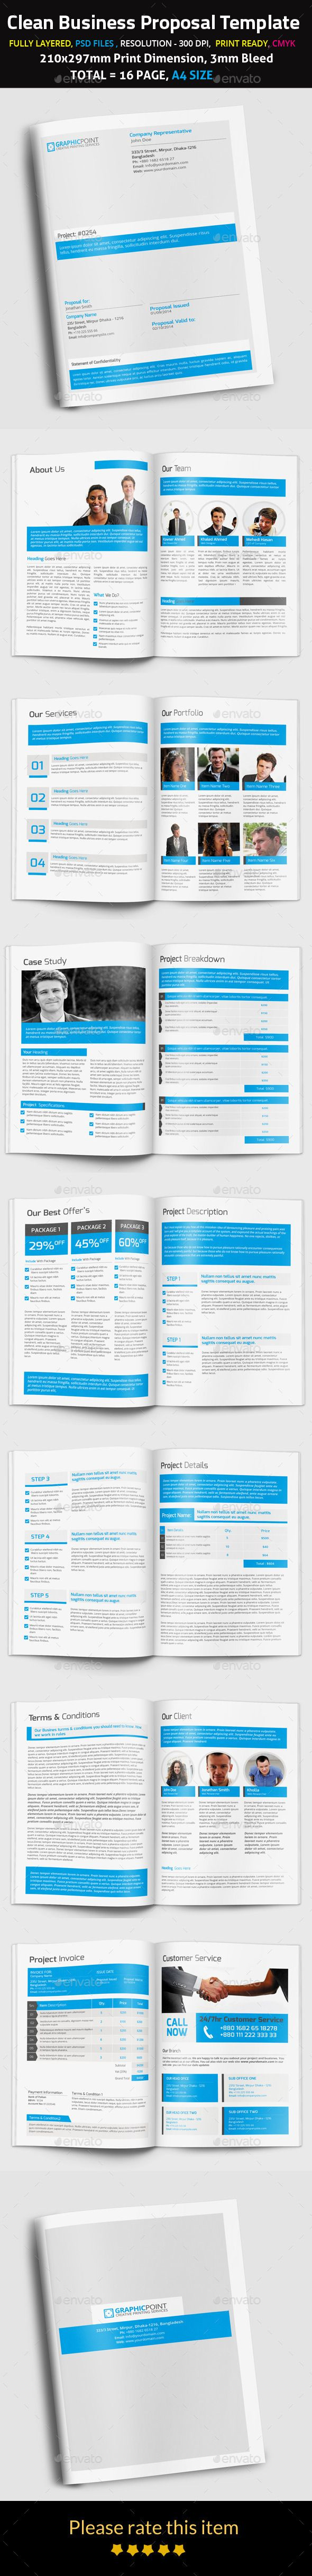 Commercial Proposal Format Extraordinary 504 Best Business Proposal Images On Pinterest  Proposal Templates .